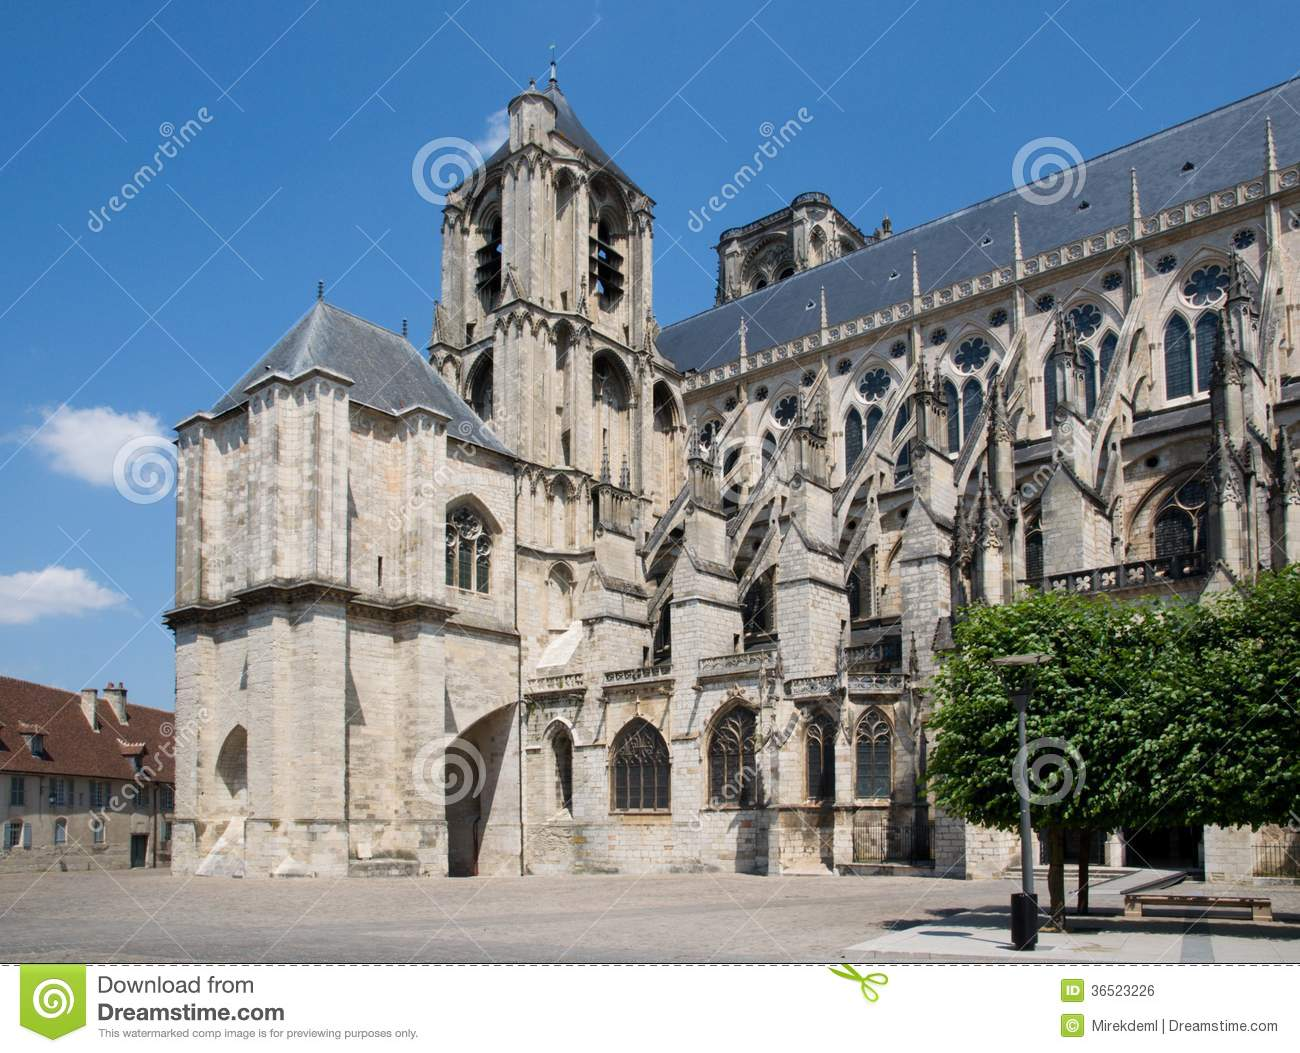 Bourges, Francia